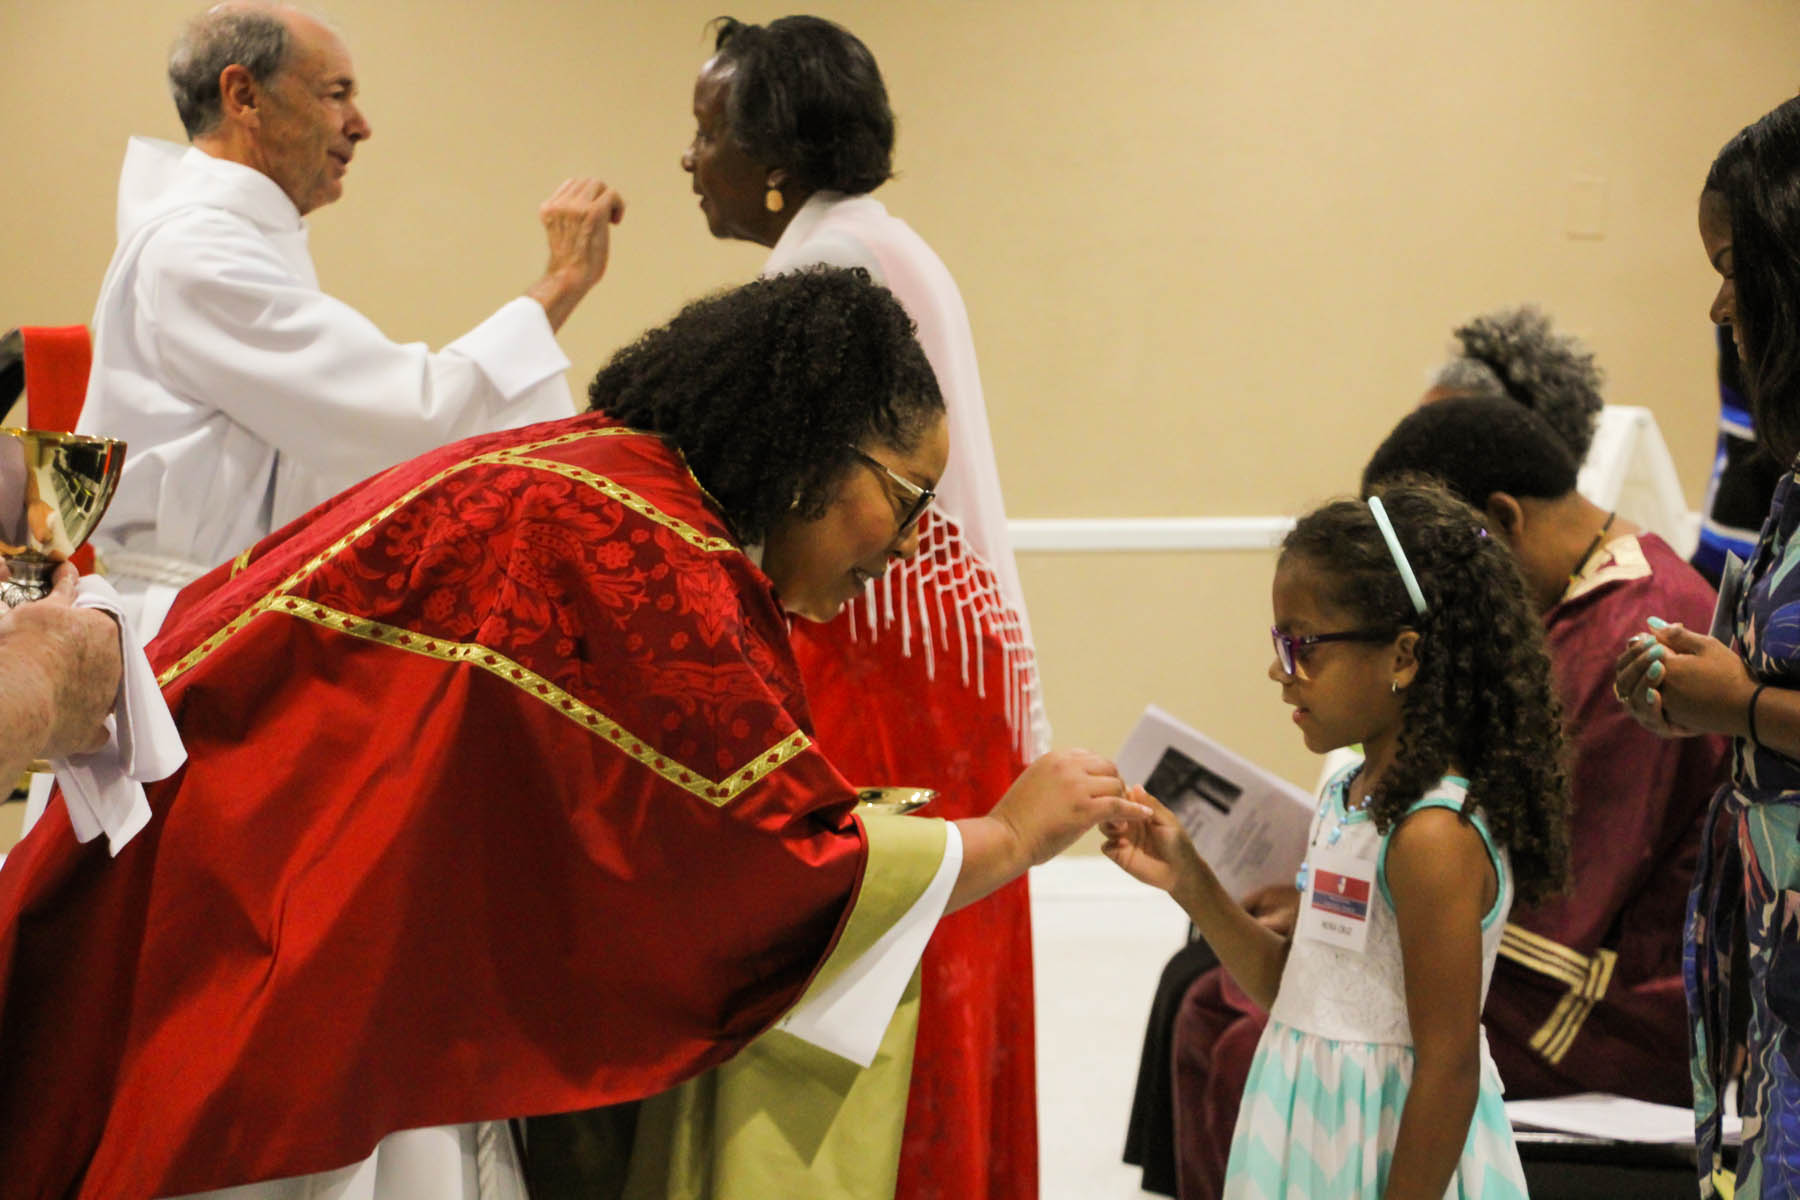 2019-04-14-WCEC-Palm-Sunday-098